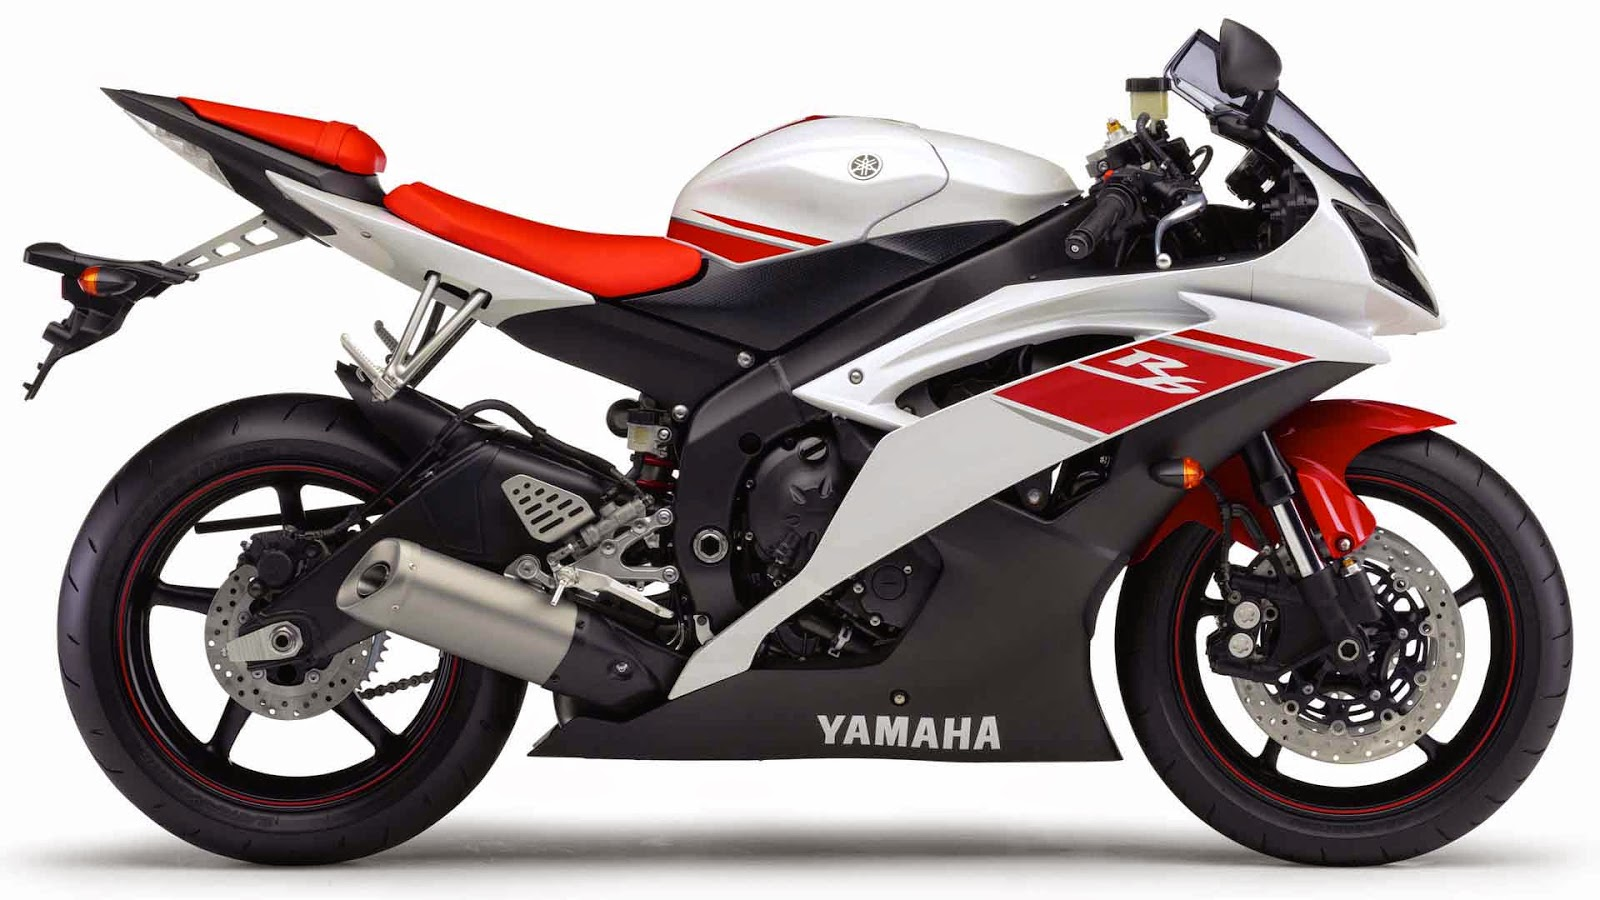 Yamaha Bike hd Wallpapers cool-Desktop Dackground Images Widescreen